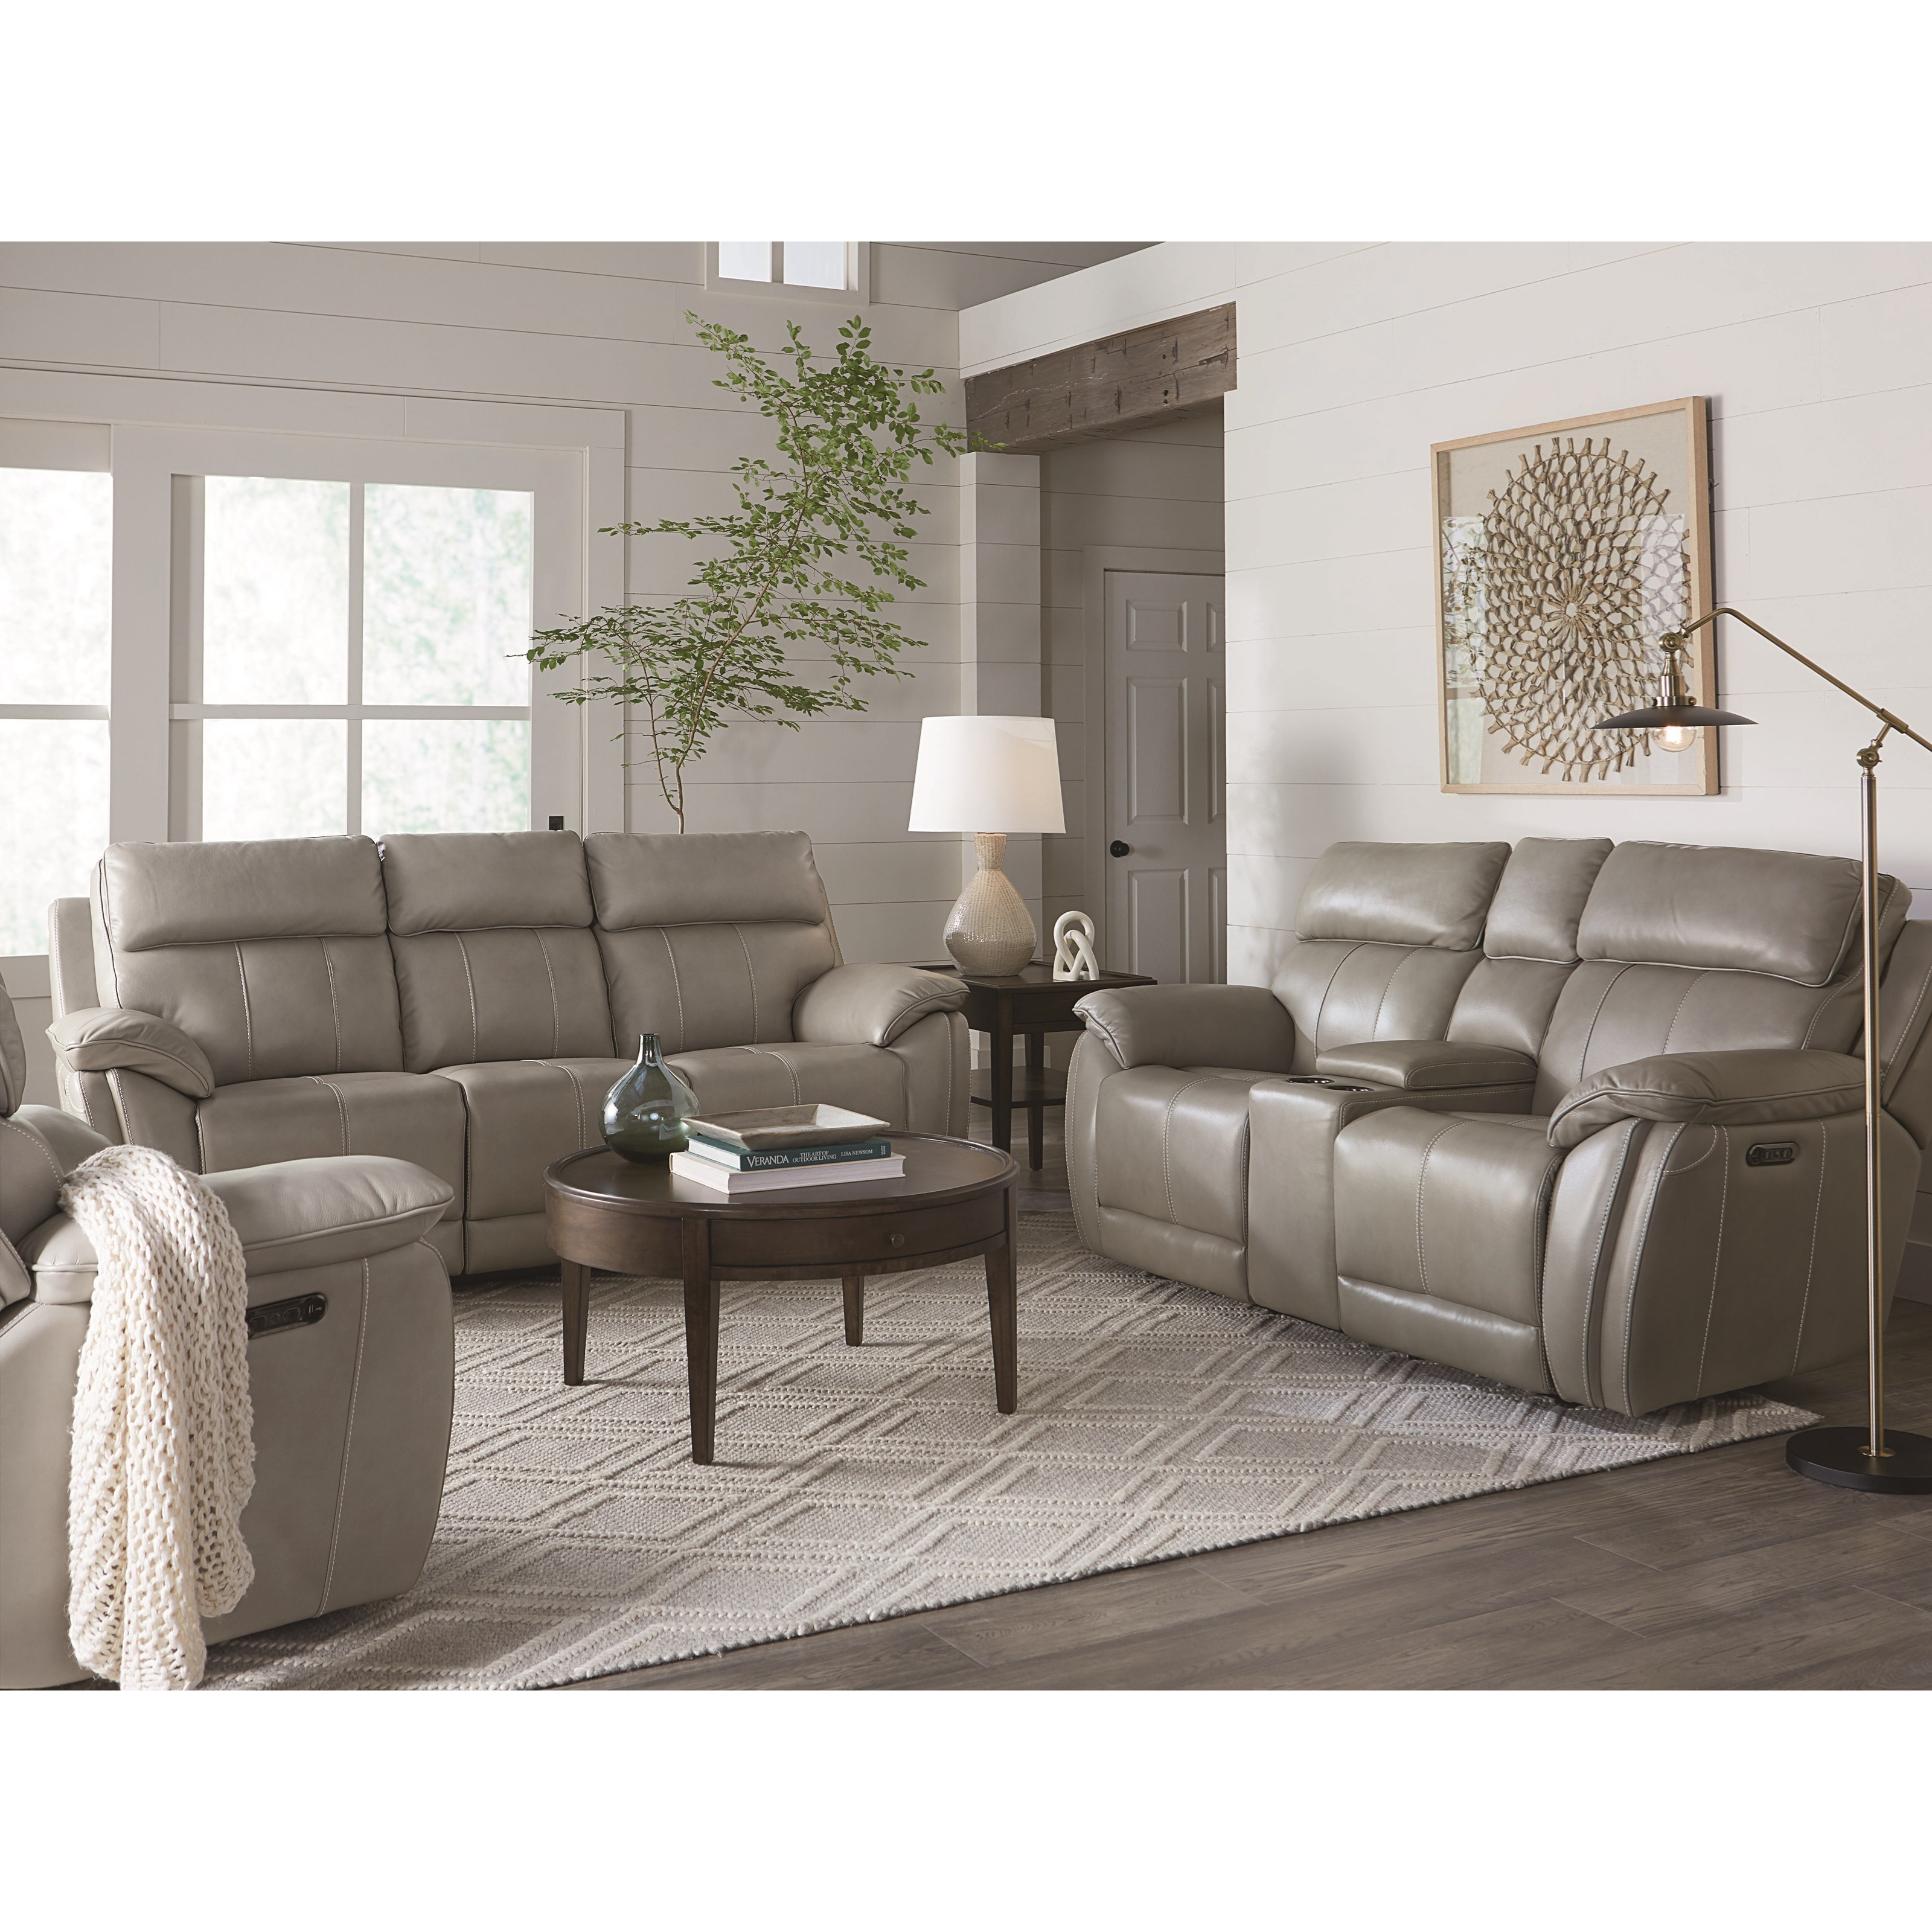 Club Level - Levitate Reclining Living Room Group by Bassett at Esprit Decor Home Furnishings